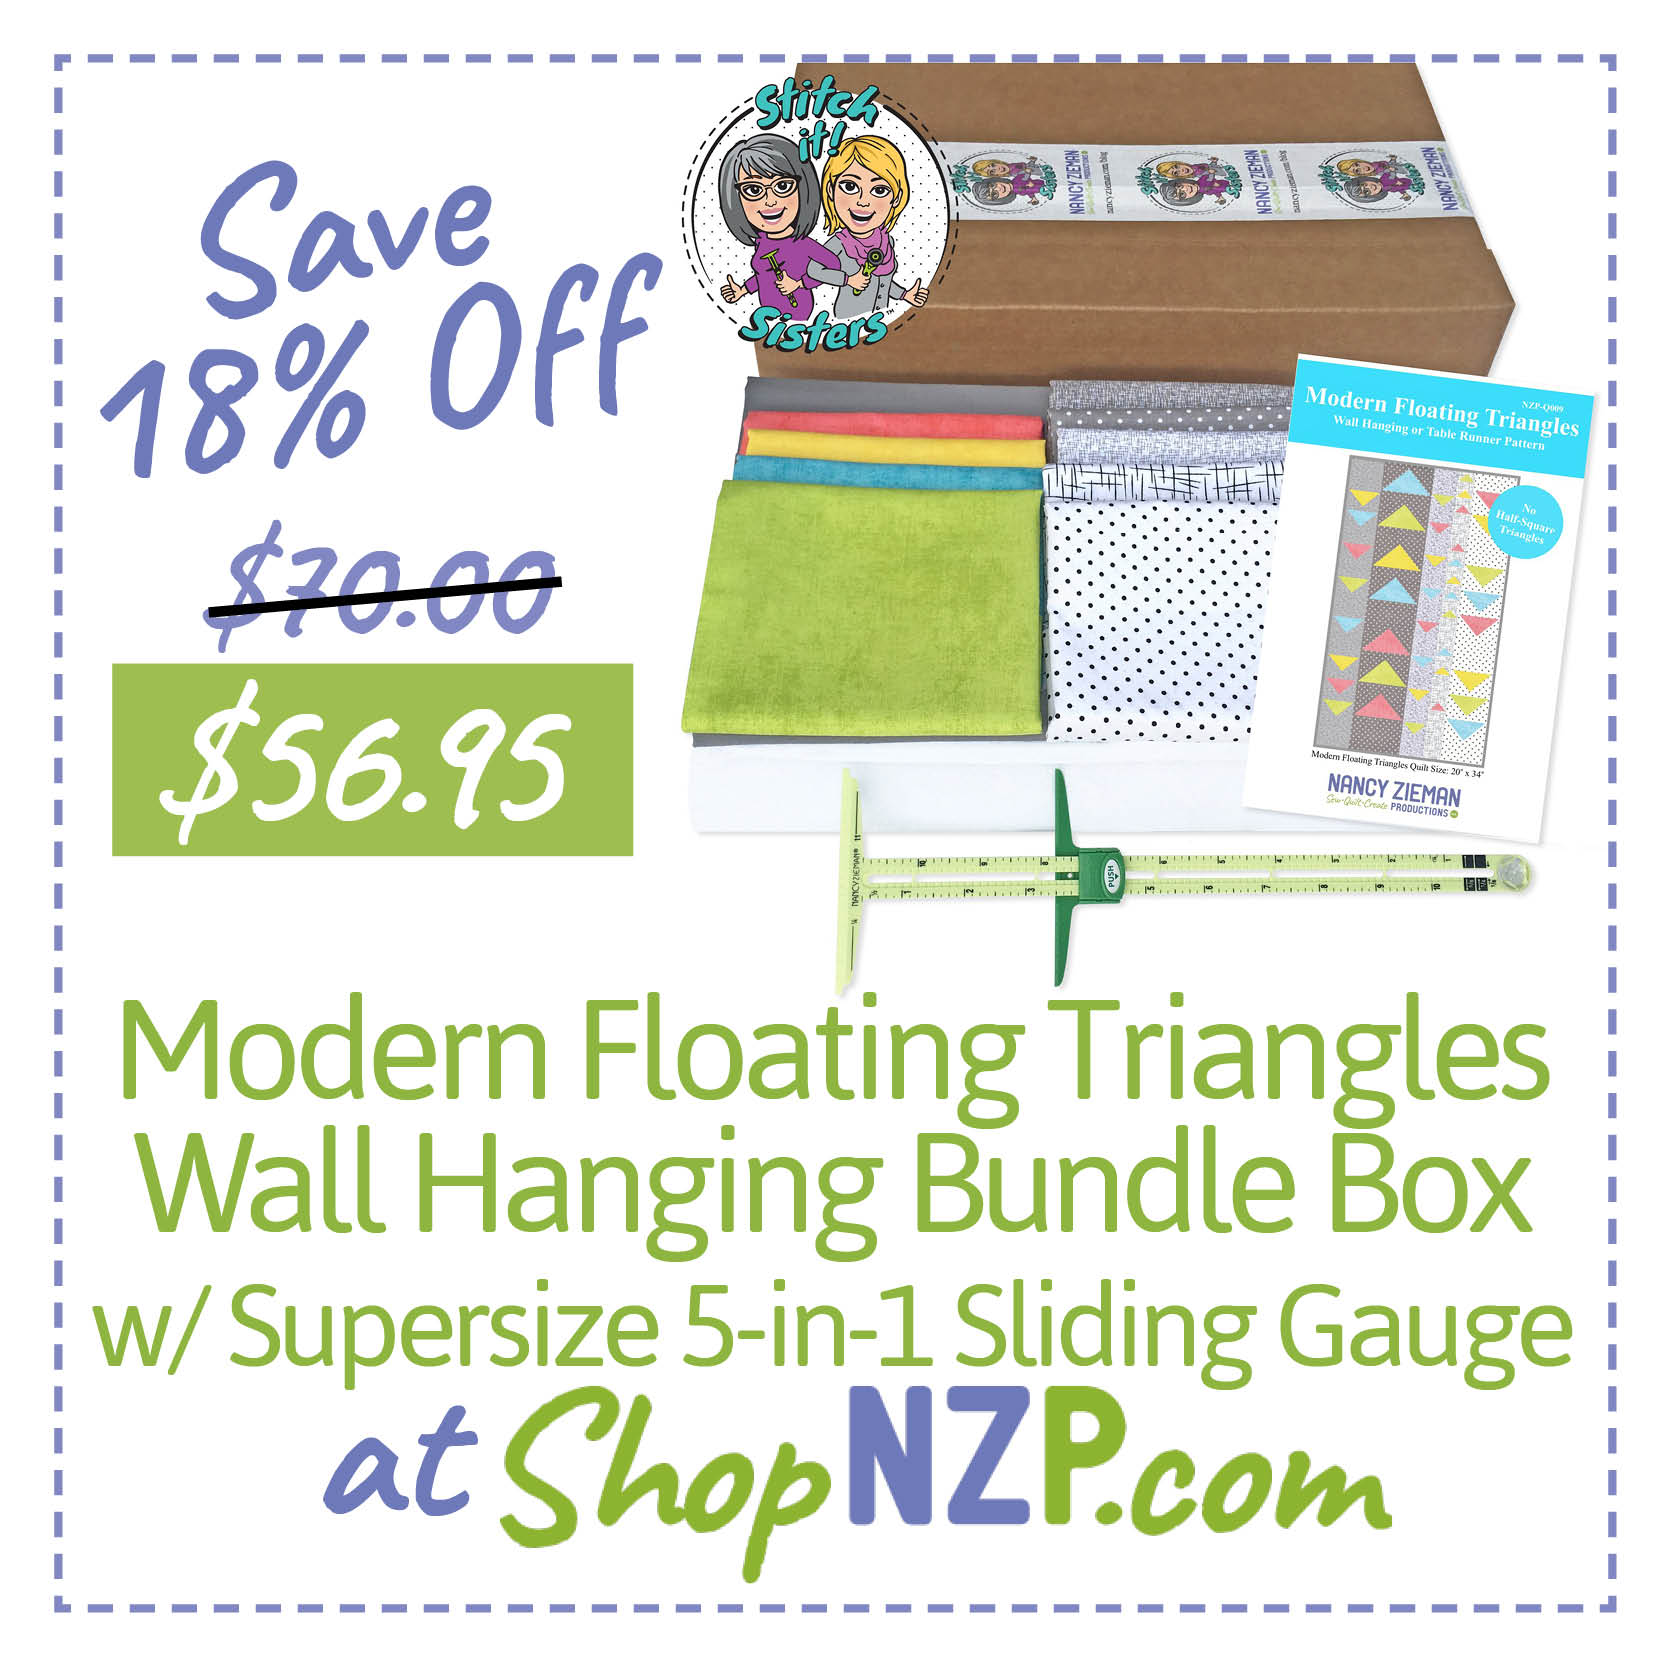 Save 18 Percent Off Modern Floating Triangles Wall Hanging Bundle Box with Supersize 5-in-1 Sliding Gauge ShopNZP.com